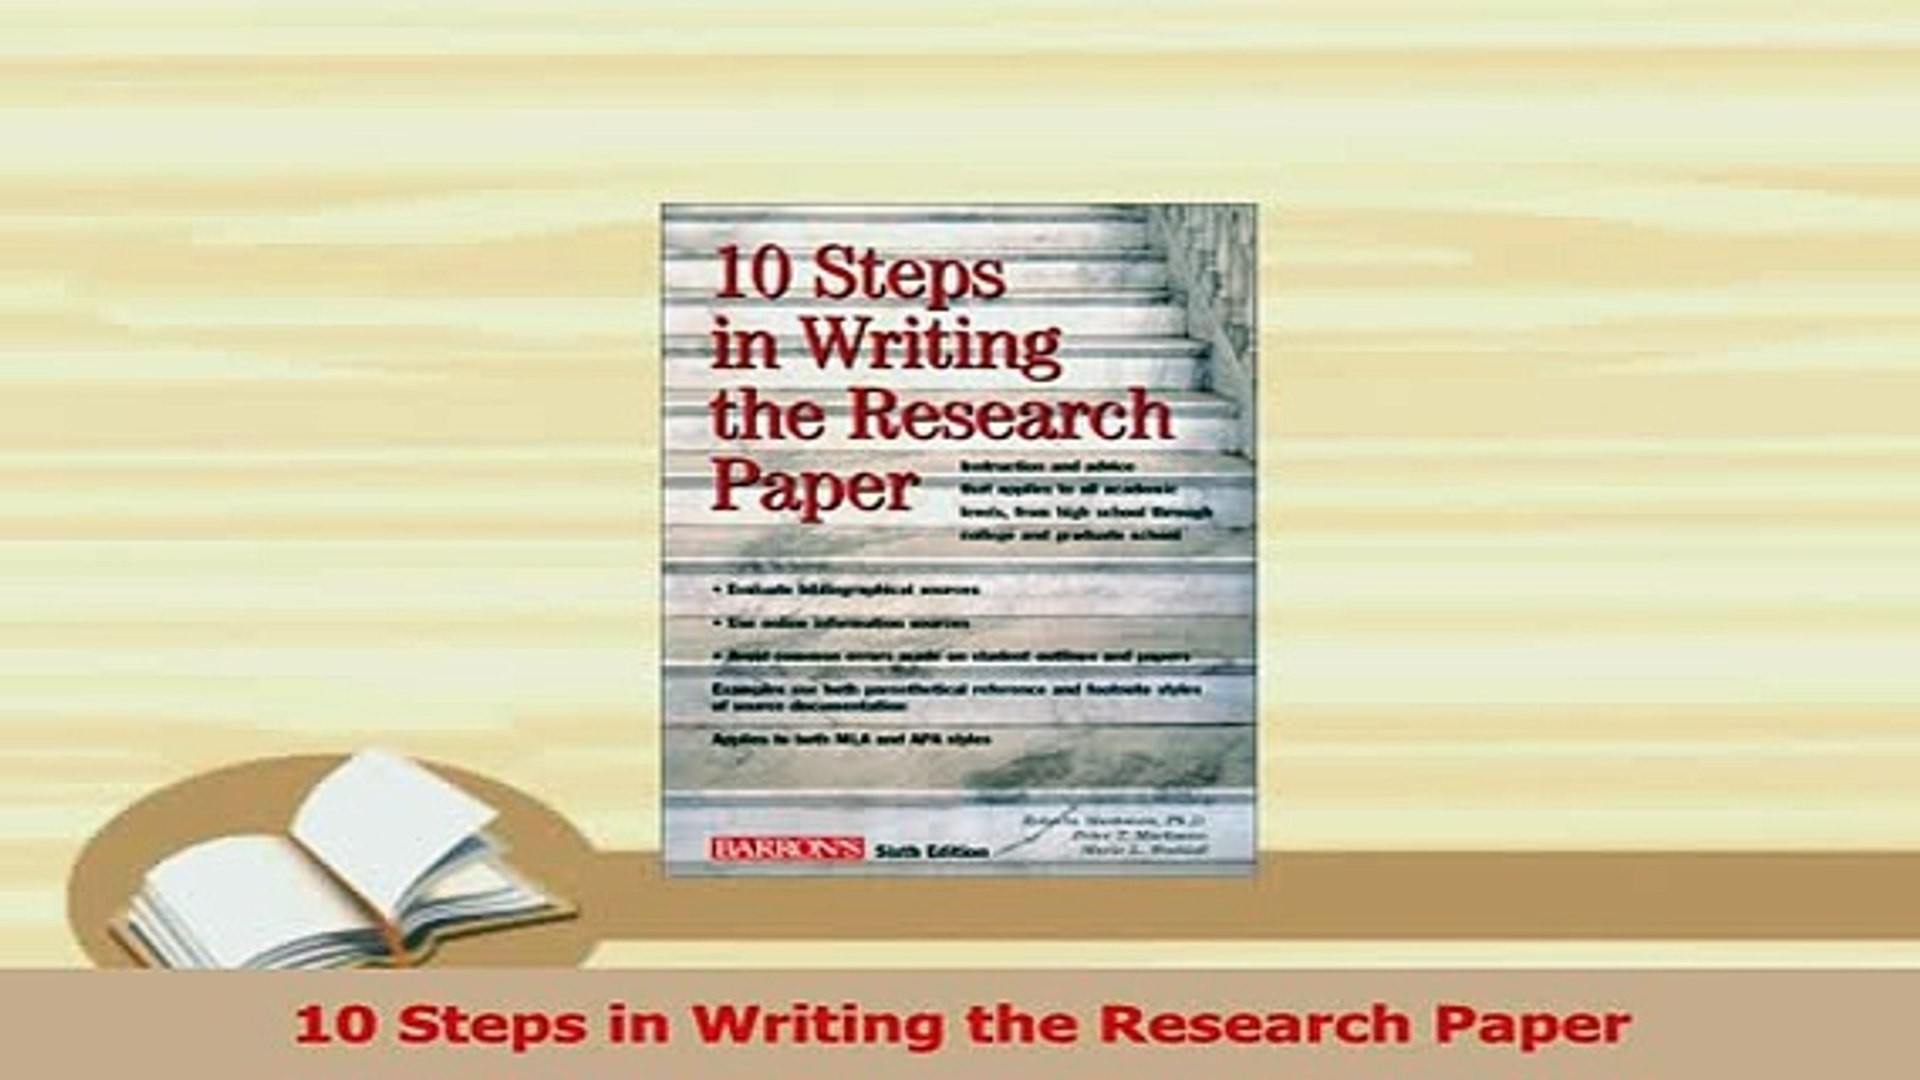 012 X1080 O3 Steps Writing Research Best 10 Paper In The Markman Pdf To A Page 1920